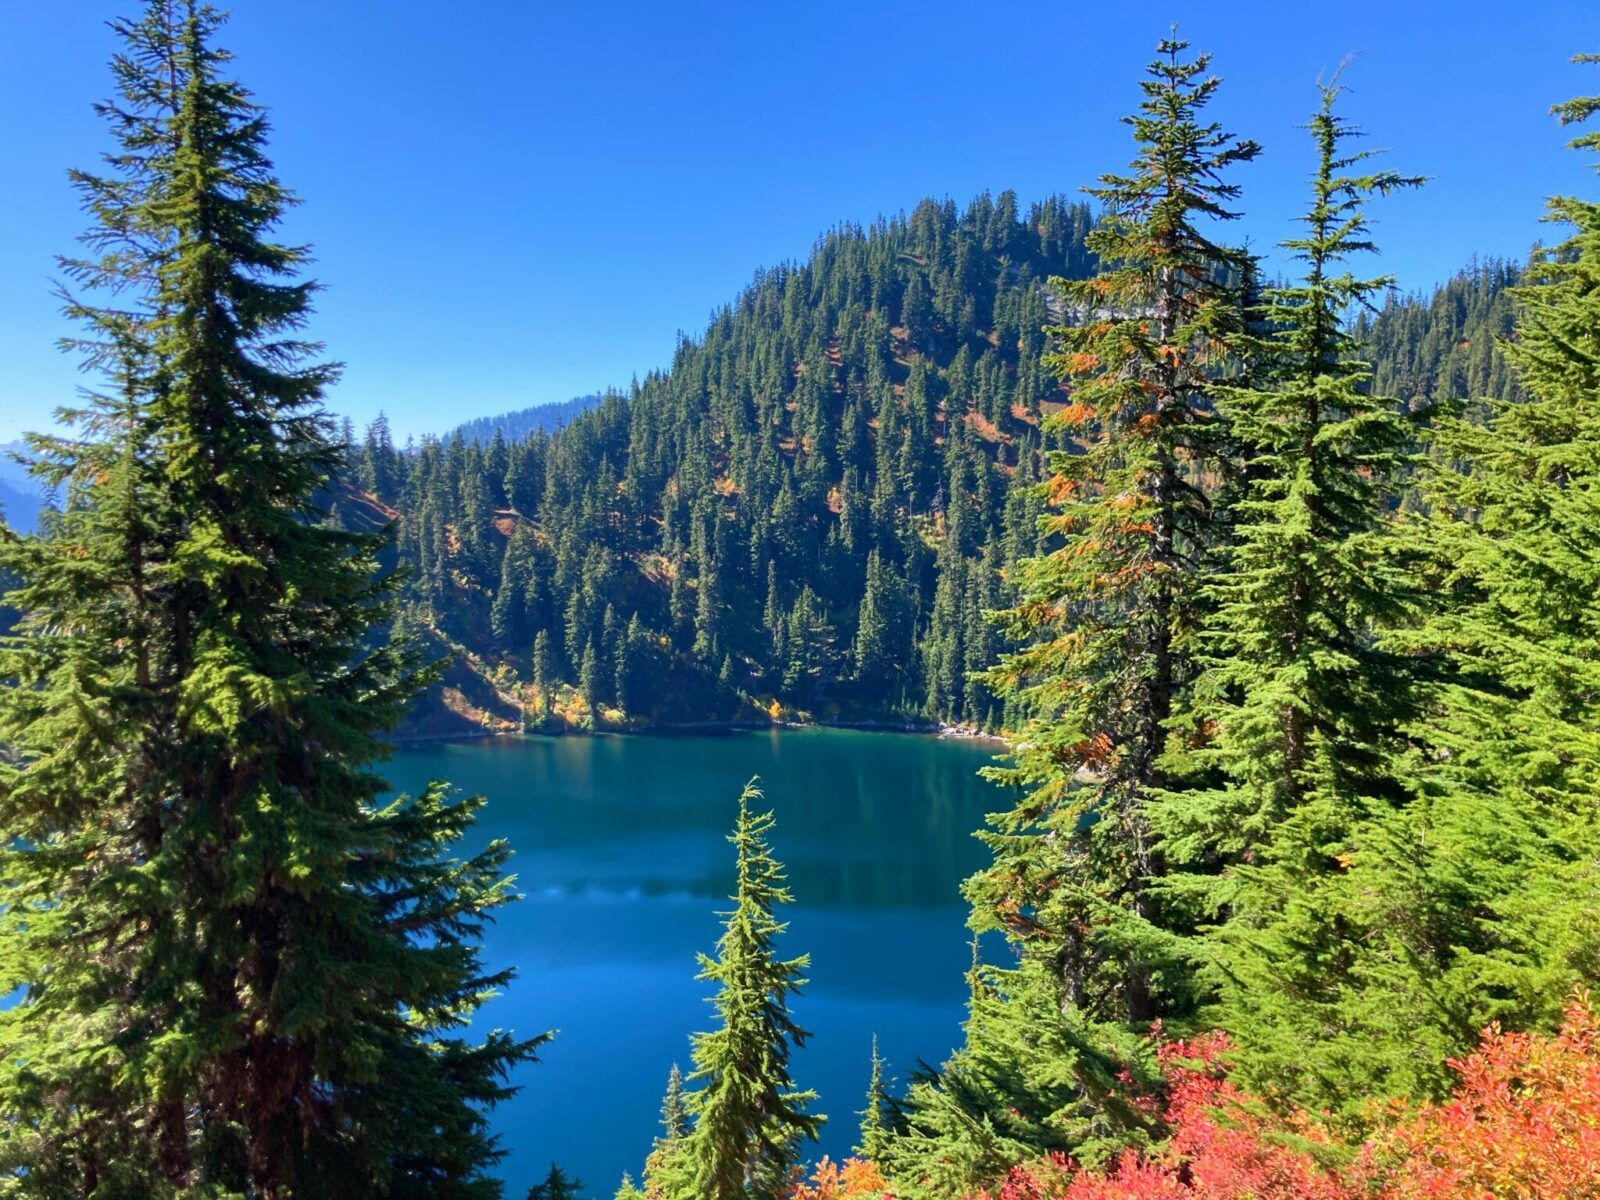 Lake Valhalla is blue and green seen below the trail above. It is surrounded by evergreen trees and red berry bushes on a sunny fall day